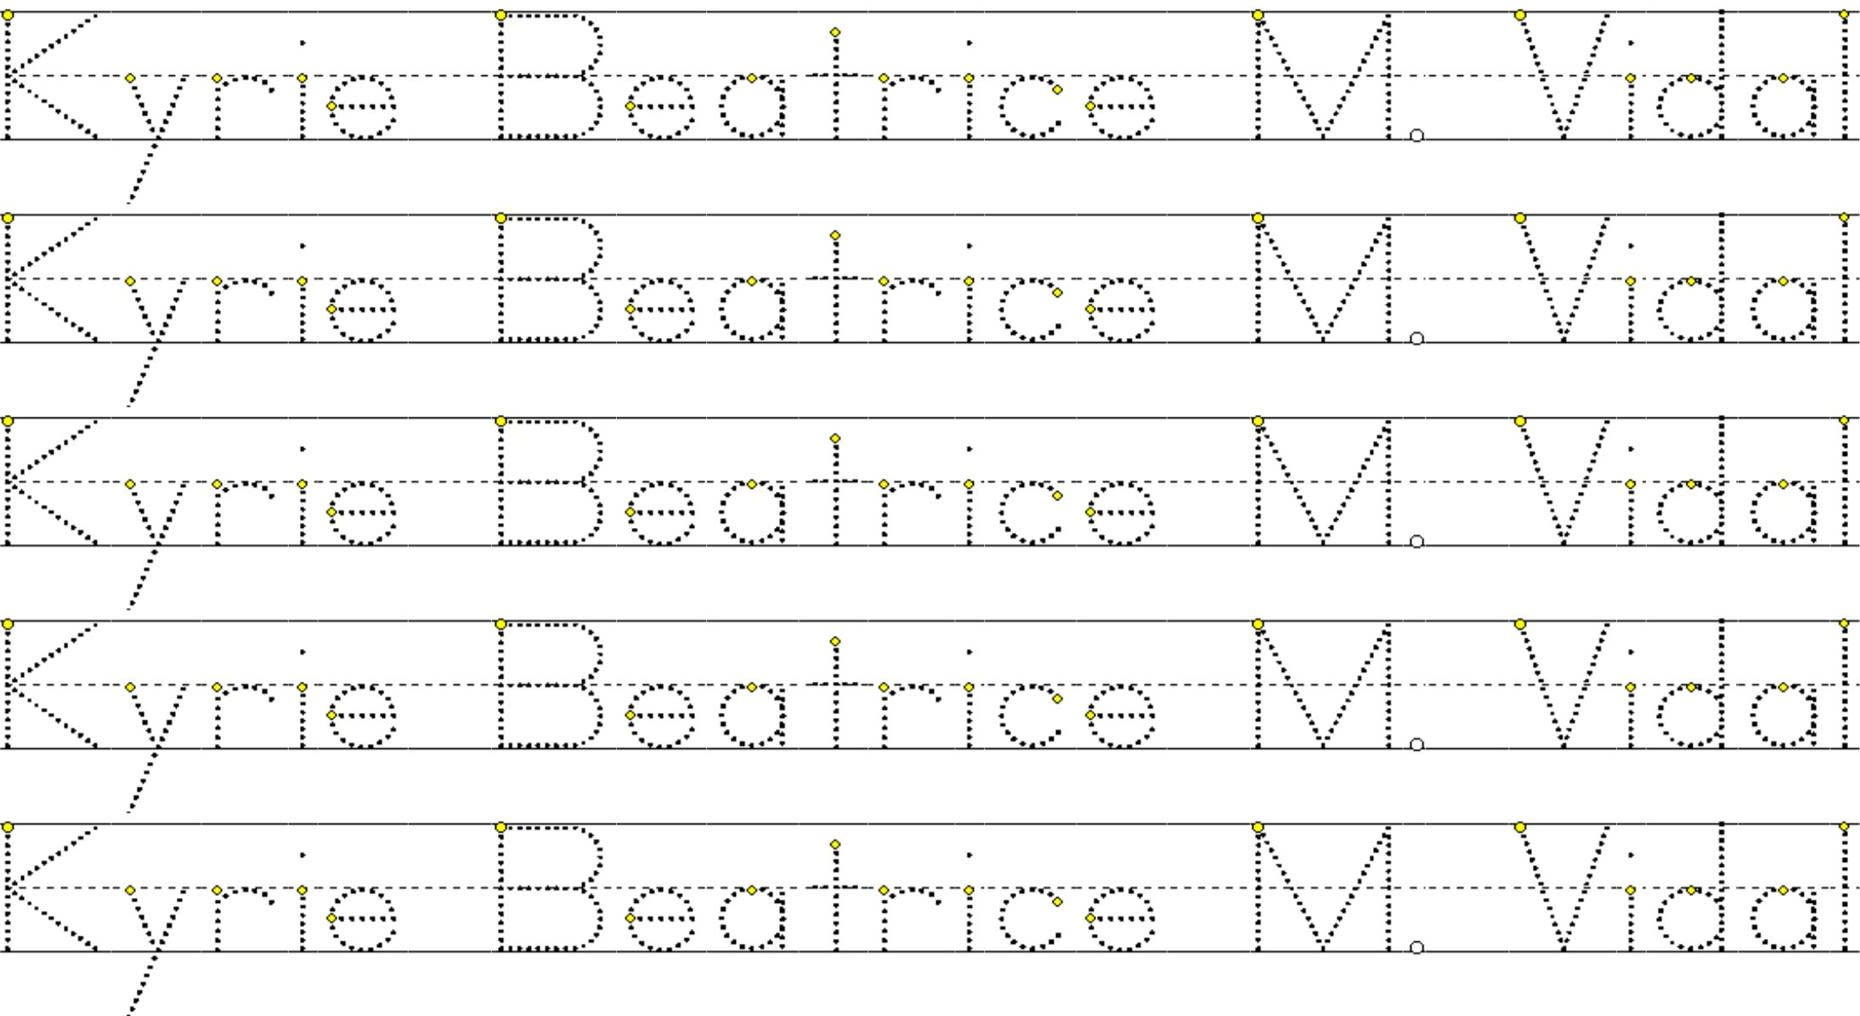 Create A Worksheet With A Personalized Tracing Namemiss_Bebz intended for Create A Tracing Name